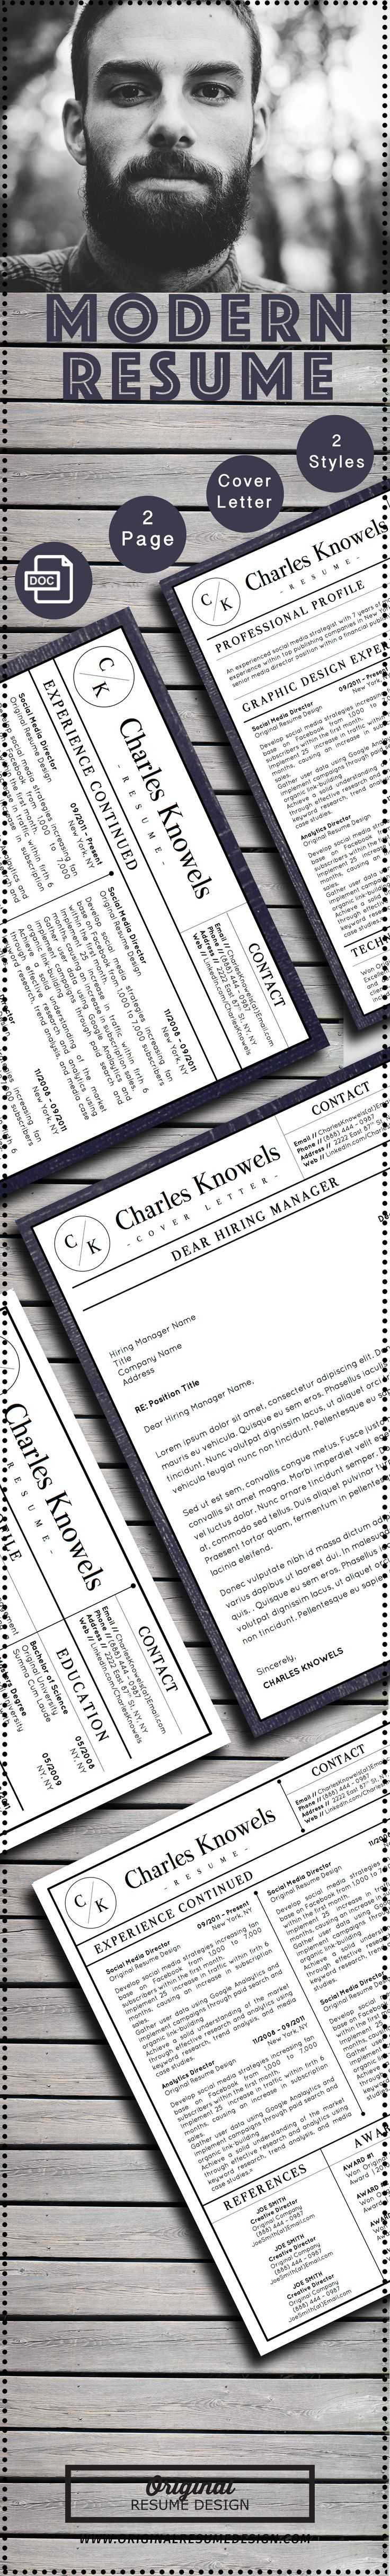 modern resume layout ideas modern resume layout